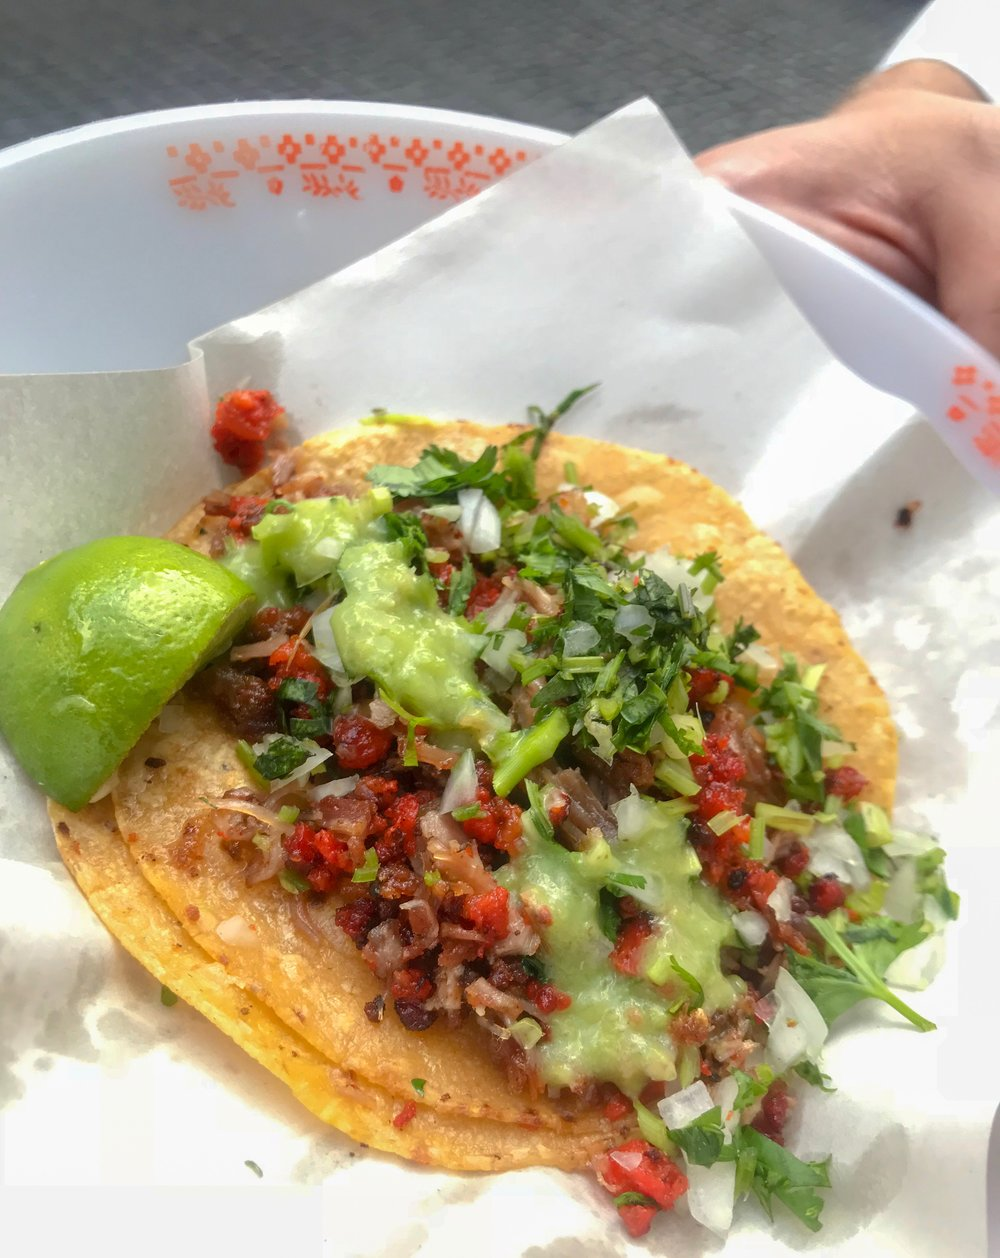 The BEST tacos in all of Mexico City - Downtown Mexico City Guide